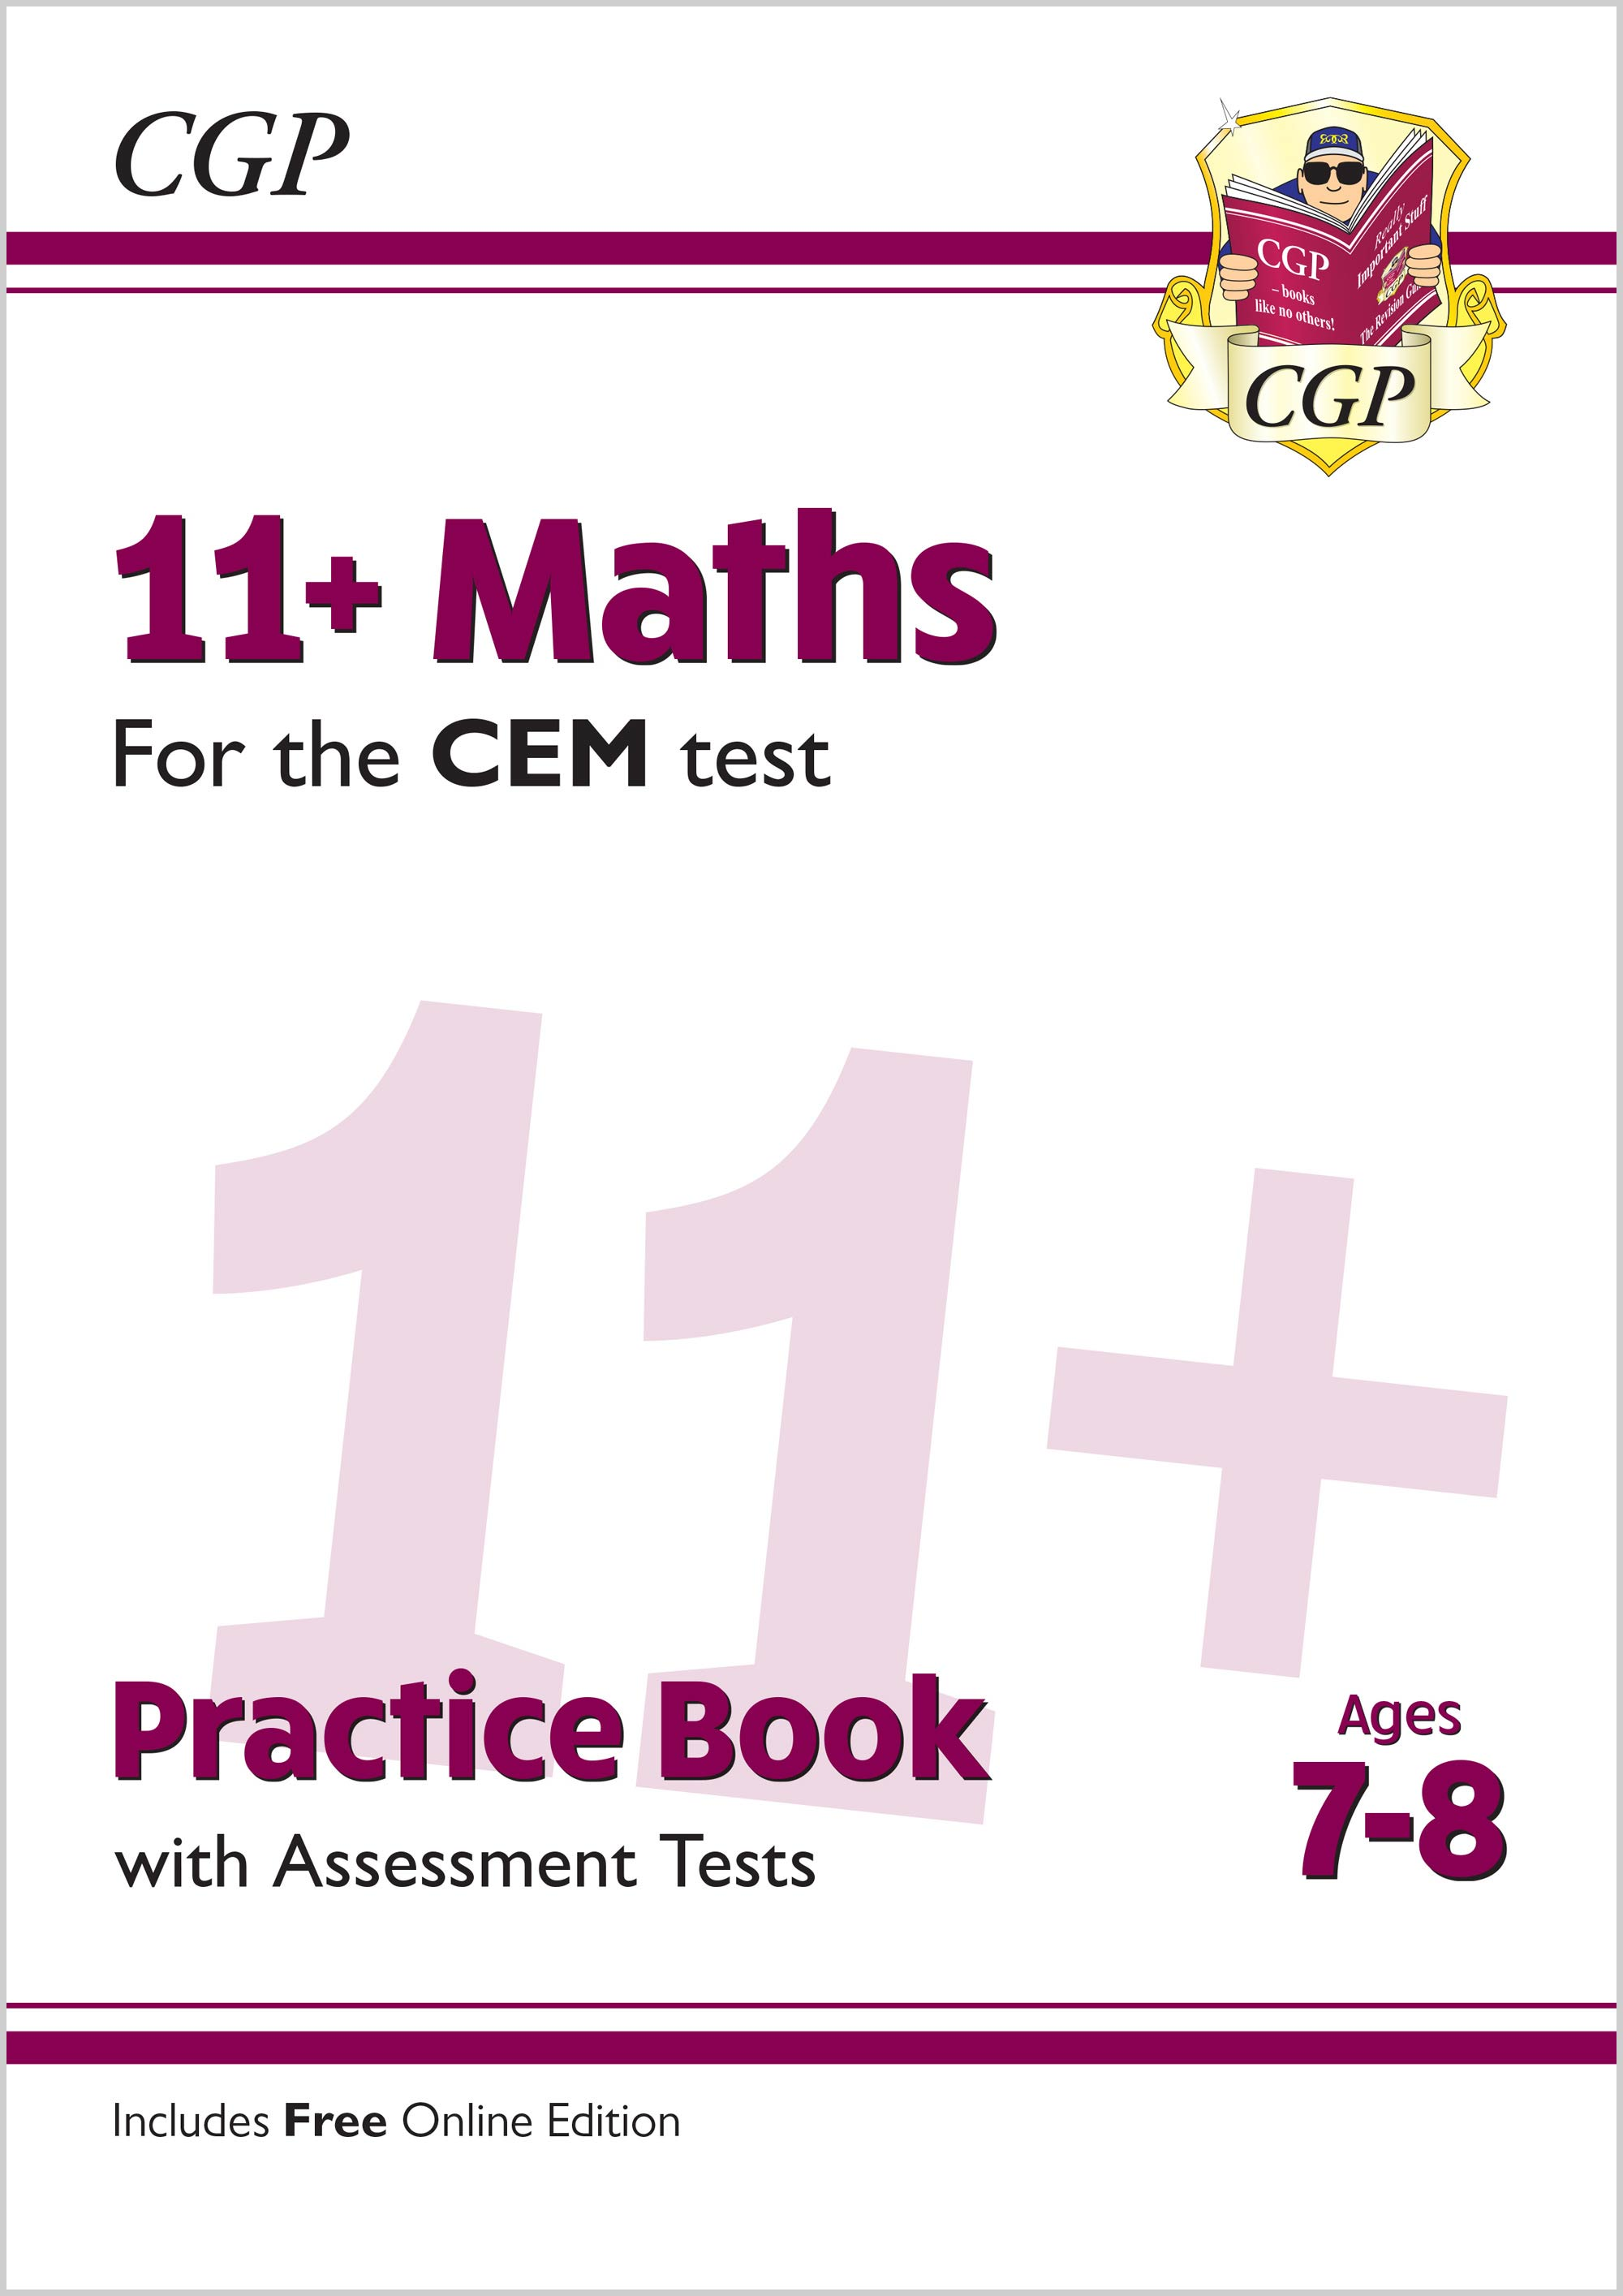 M3QDE2 - 11+ CEM Maths Practice Book & Assessment Tests - Ages 7-8 (with Online Edition)